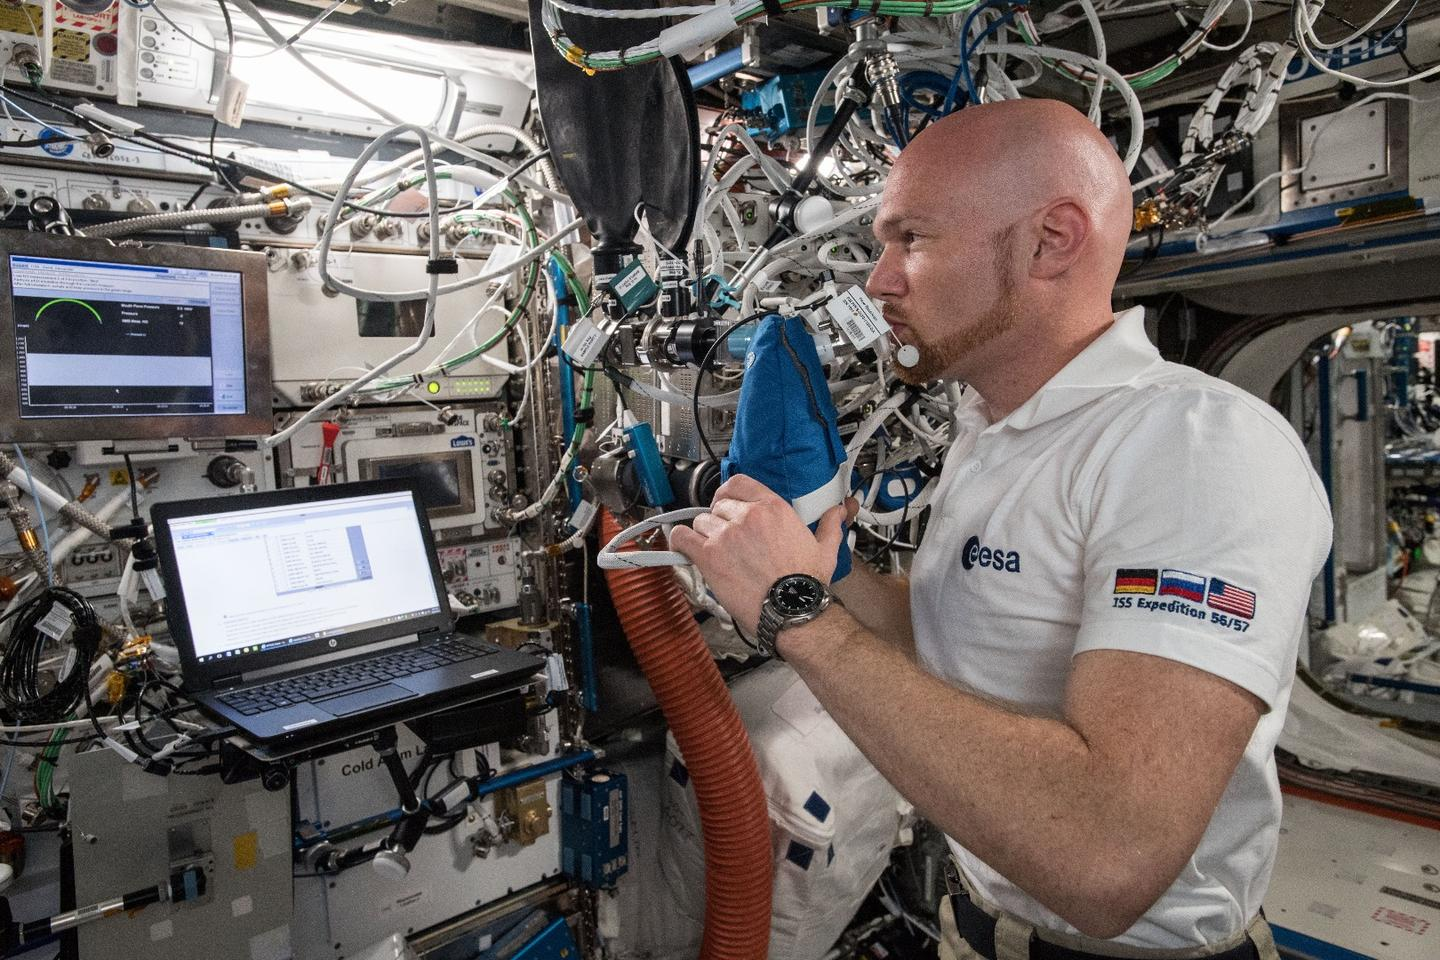 Developed by researchers at the Karolinska Institutet in Sweden, the Airway Monitoring experiment measures astronauts' breath to determine the health of their lungs